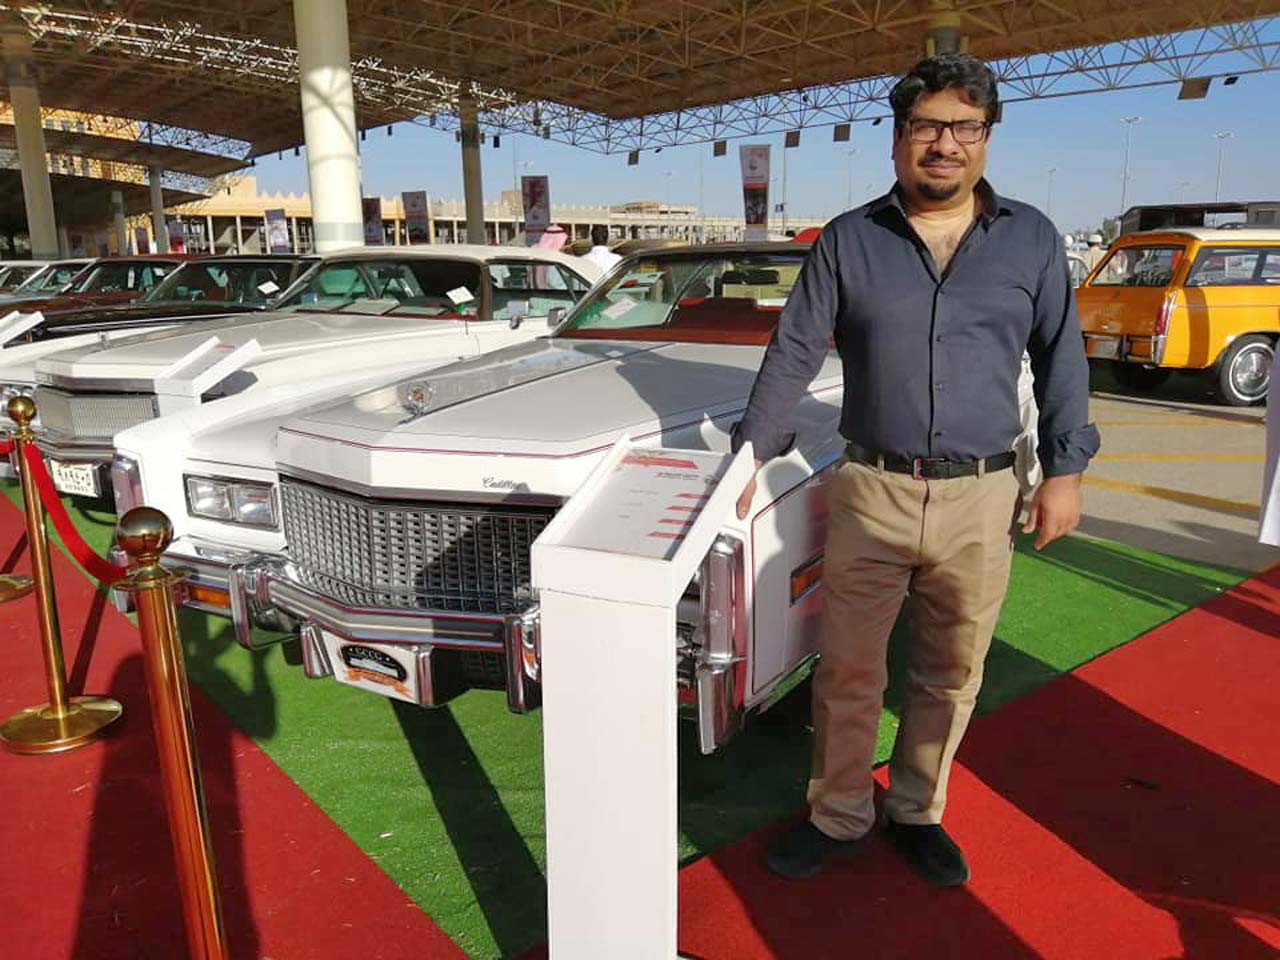 Dr. Syed Azam Sher at the Buraida City Classic Cars Festival, 19th April 2019